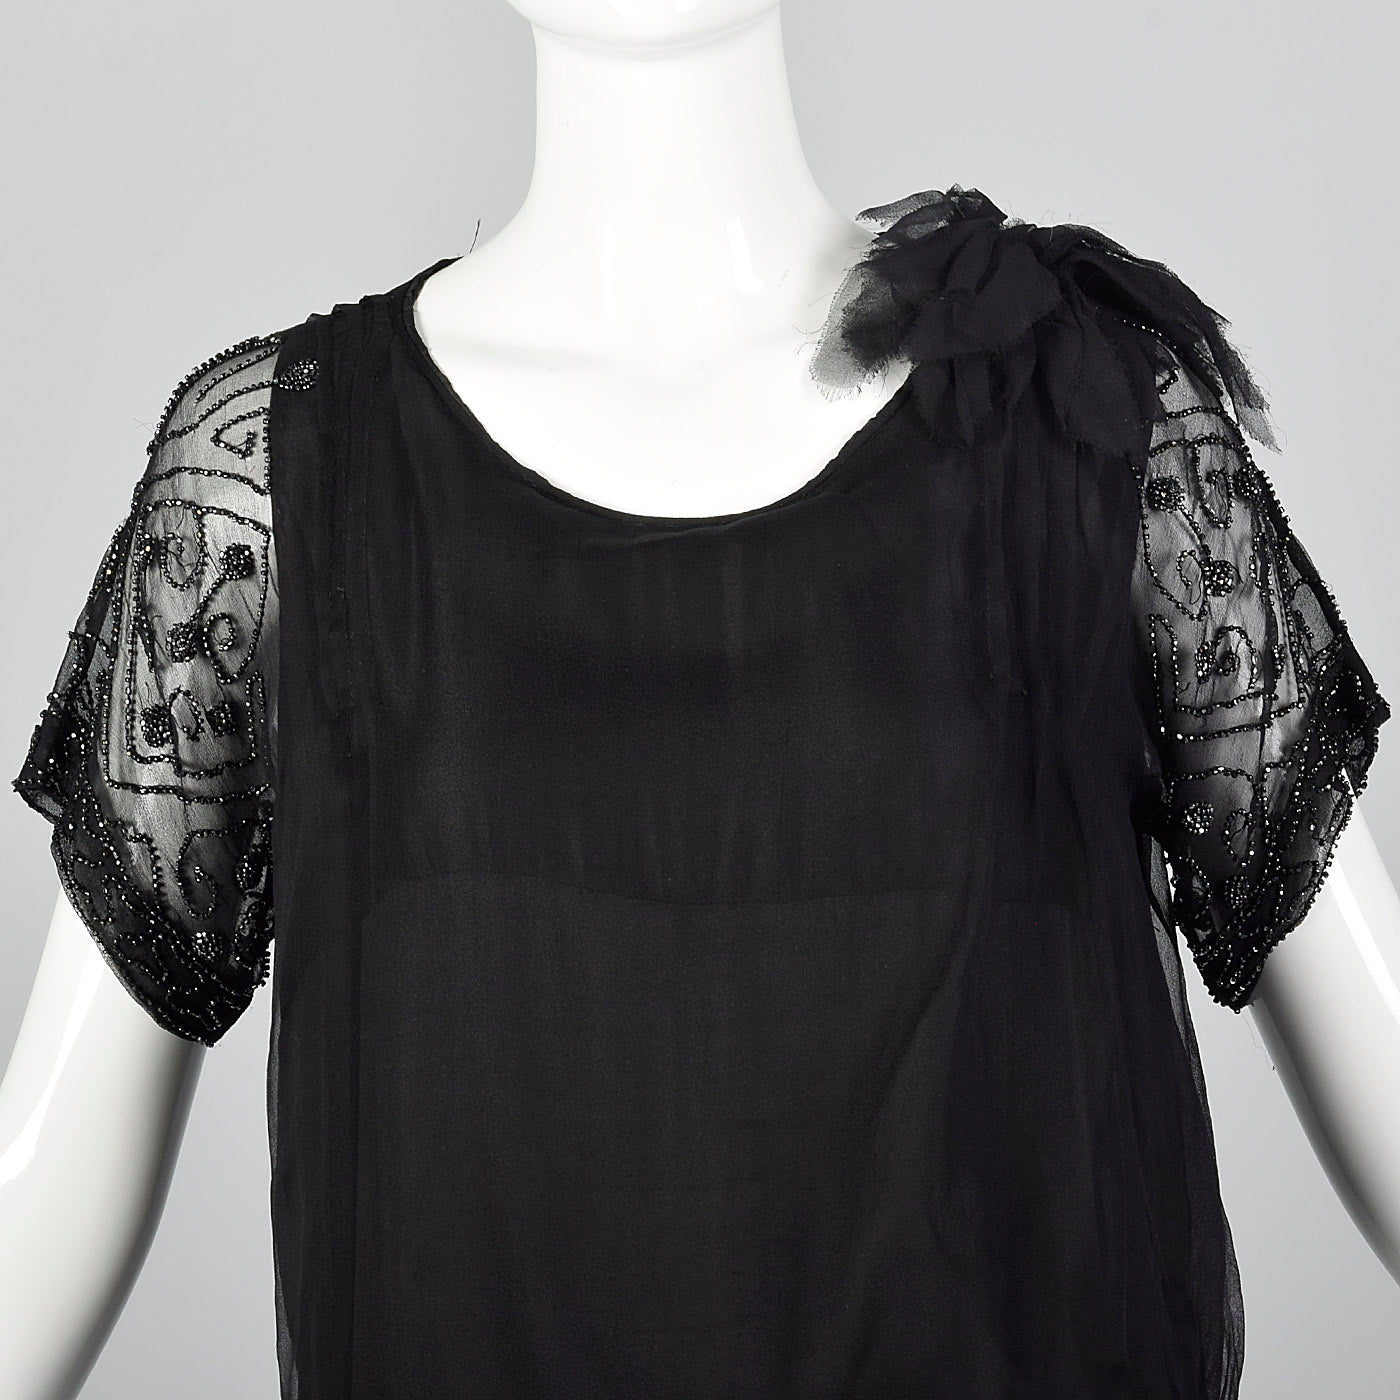 1920s Black Silk Chiffon Dress with Steel Beads